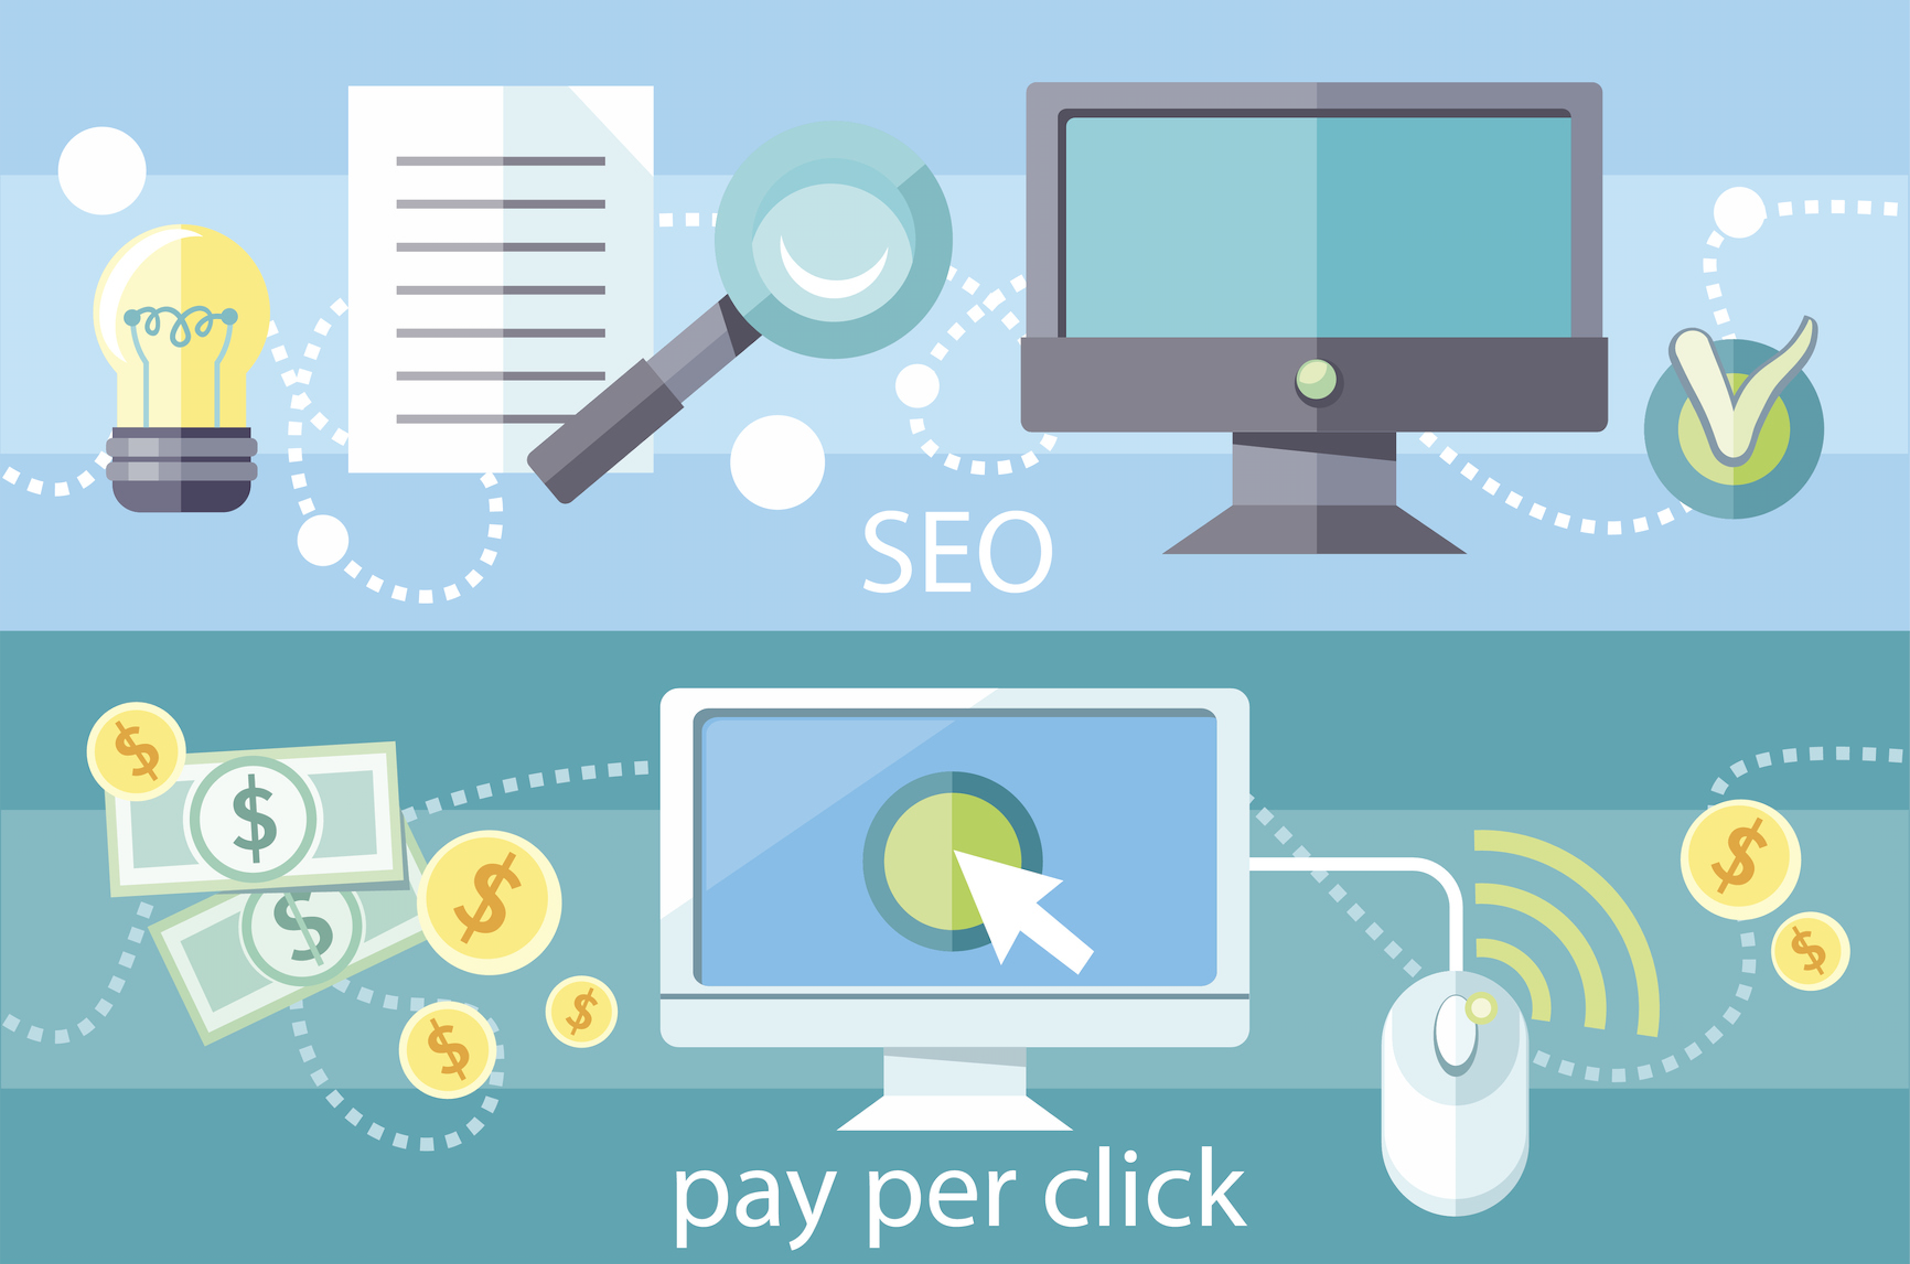 SEO vs PPC: What's best?